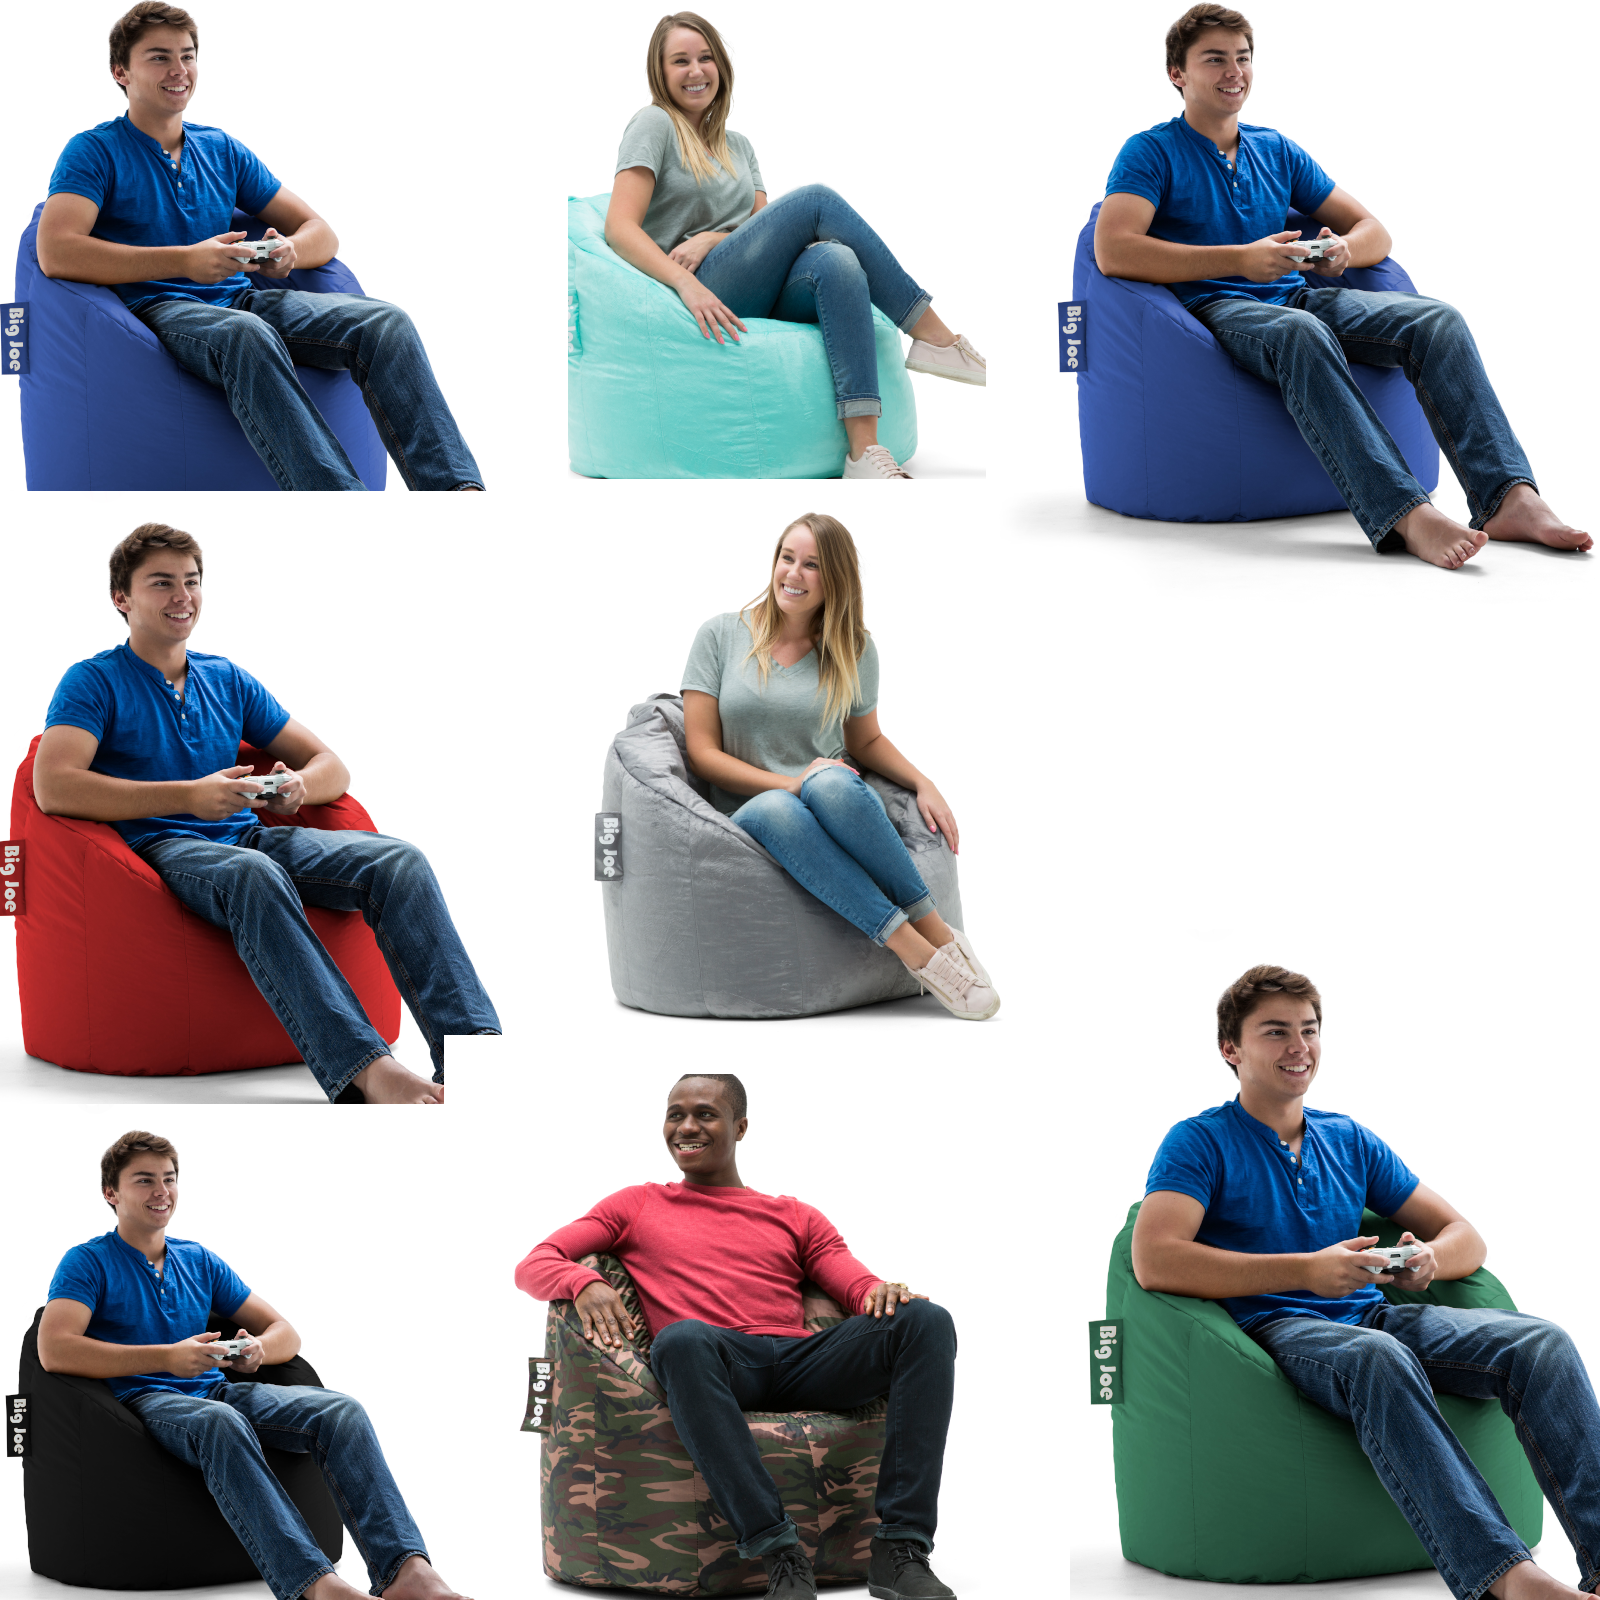 Details About Big Joe Milano Bean Bag Chair Multiple Colors Available Comfort For Kids